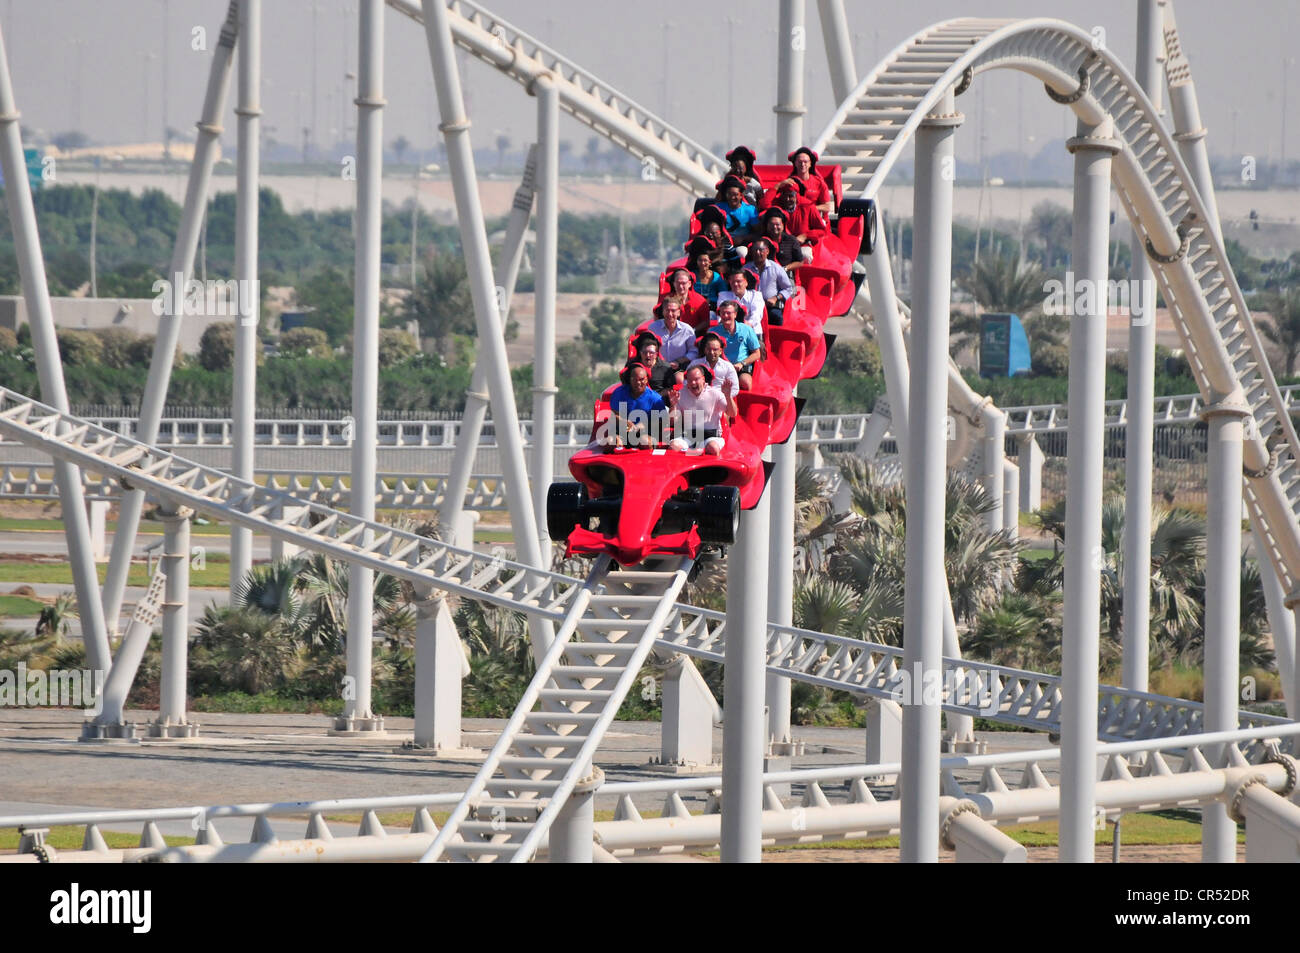 The Fastest Roller Coaster In The World At 240 Mph